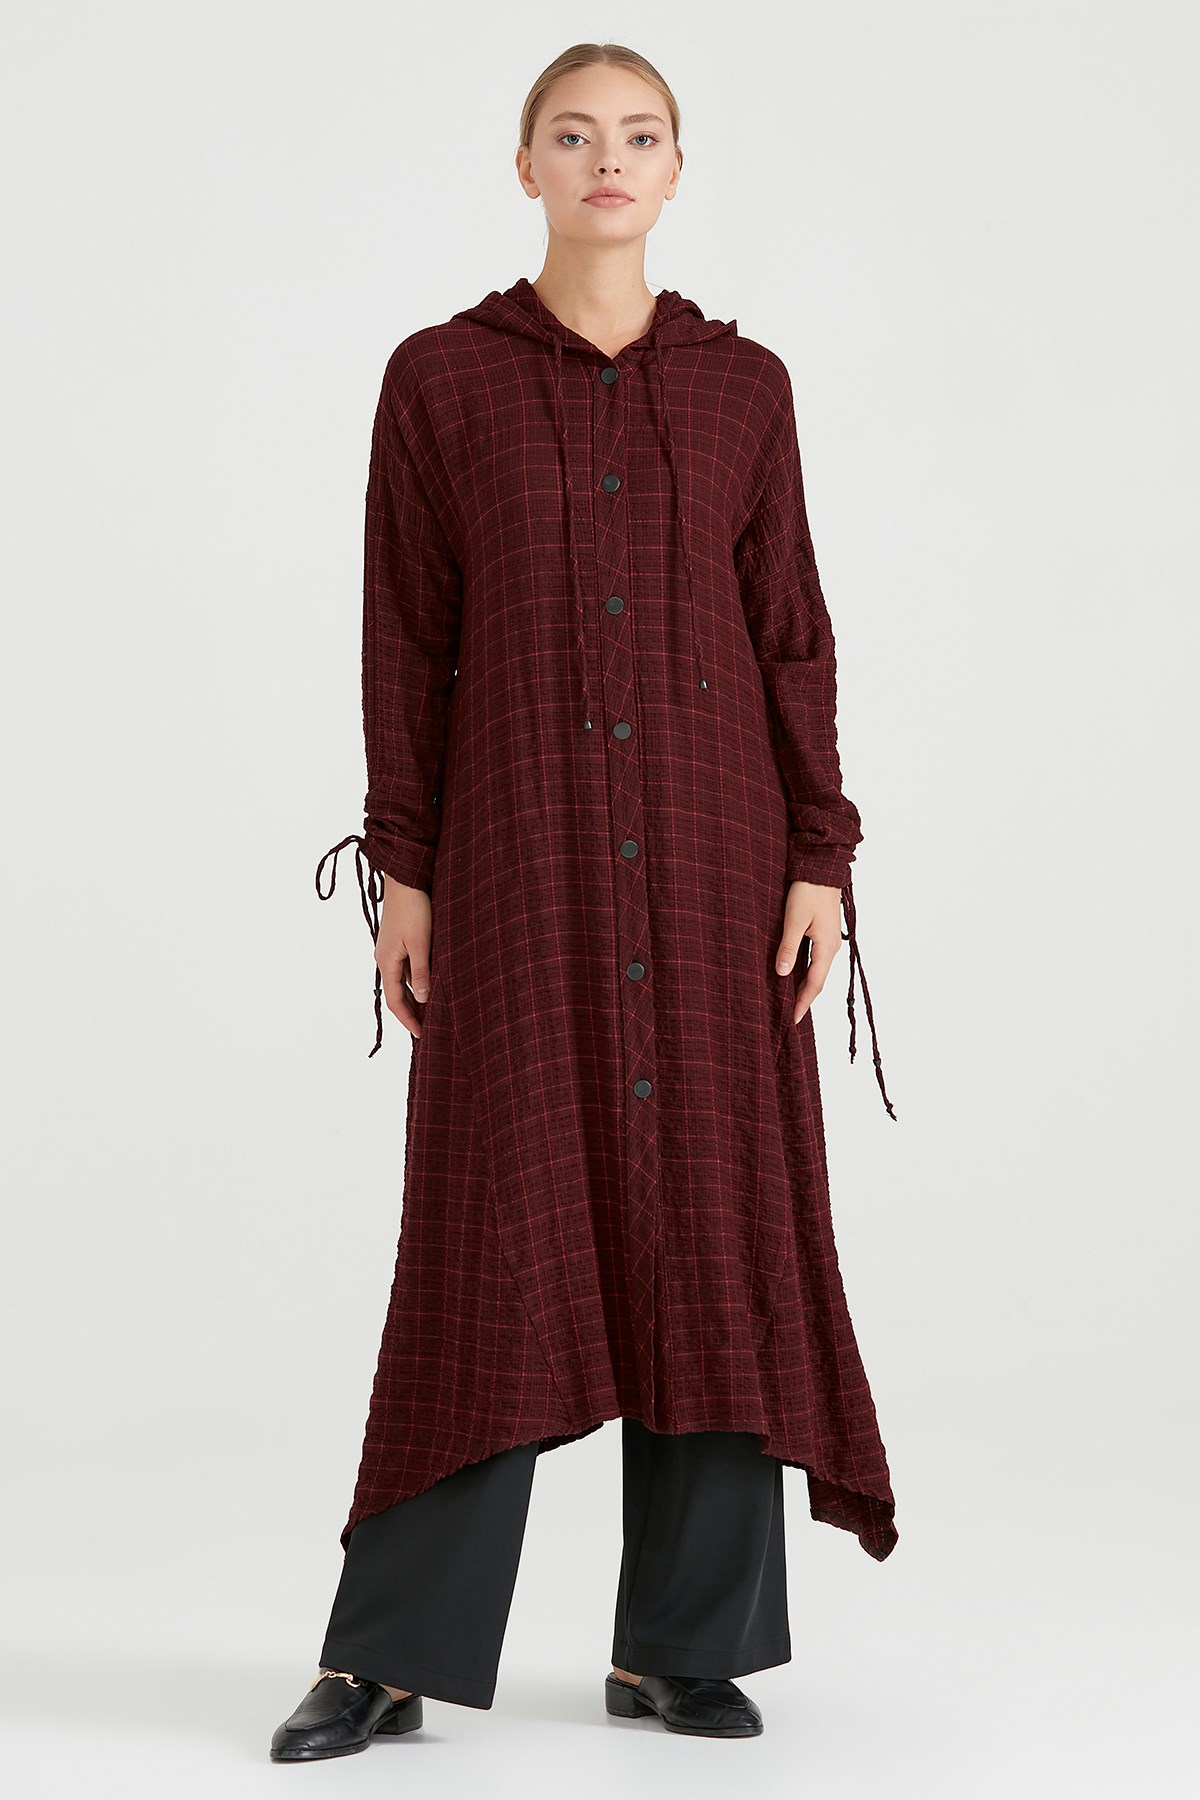 Nihan Tunik Bordo - O5123